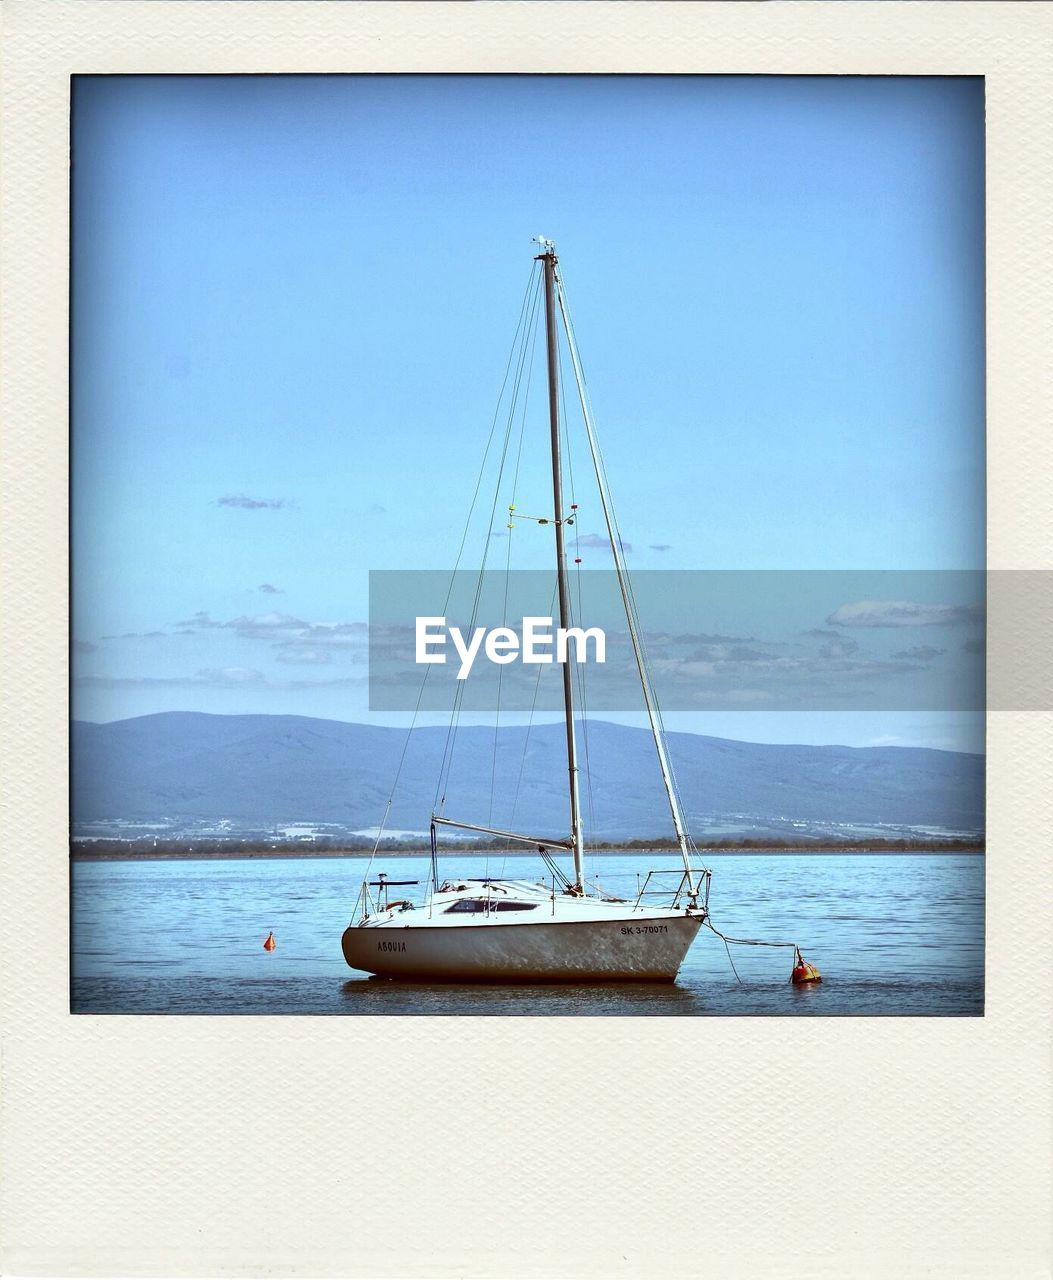 nautical vessel, transportation, mode of transport, no people, water, boat, sea, blue, moored, day, sailboat, outdoors, scenics, sky, mast, tranquility, nature, horizon over water, harbor, beauty in nature